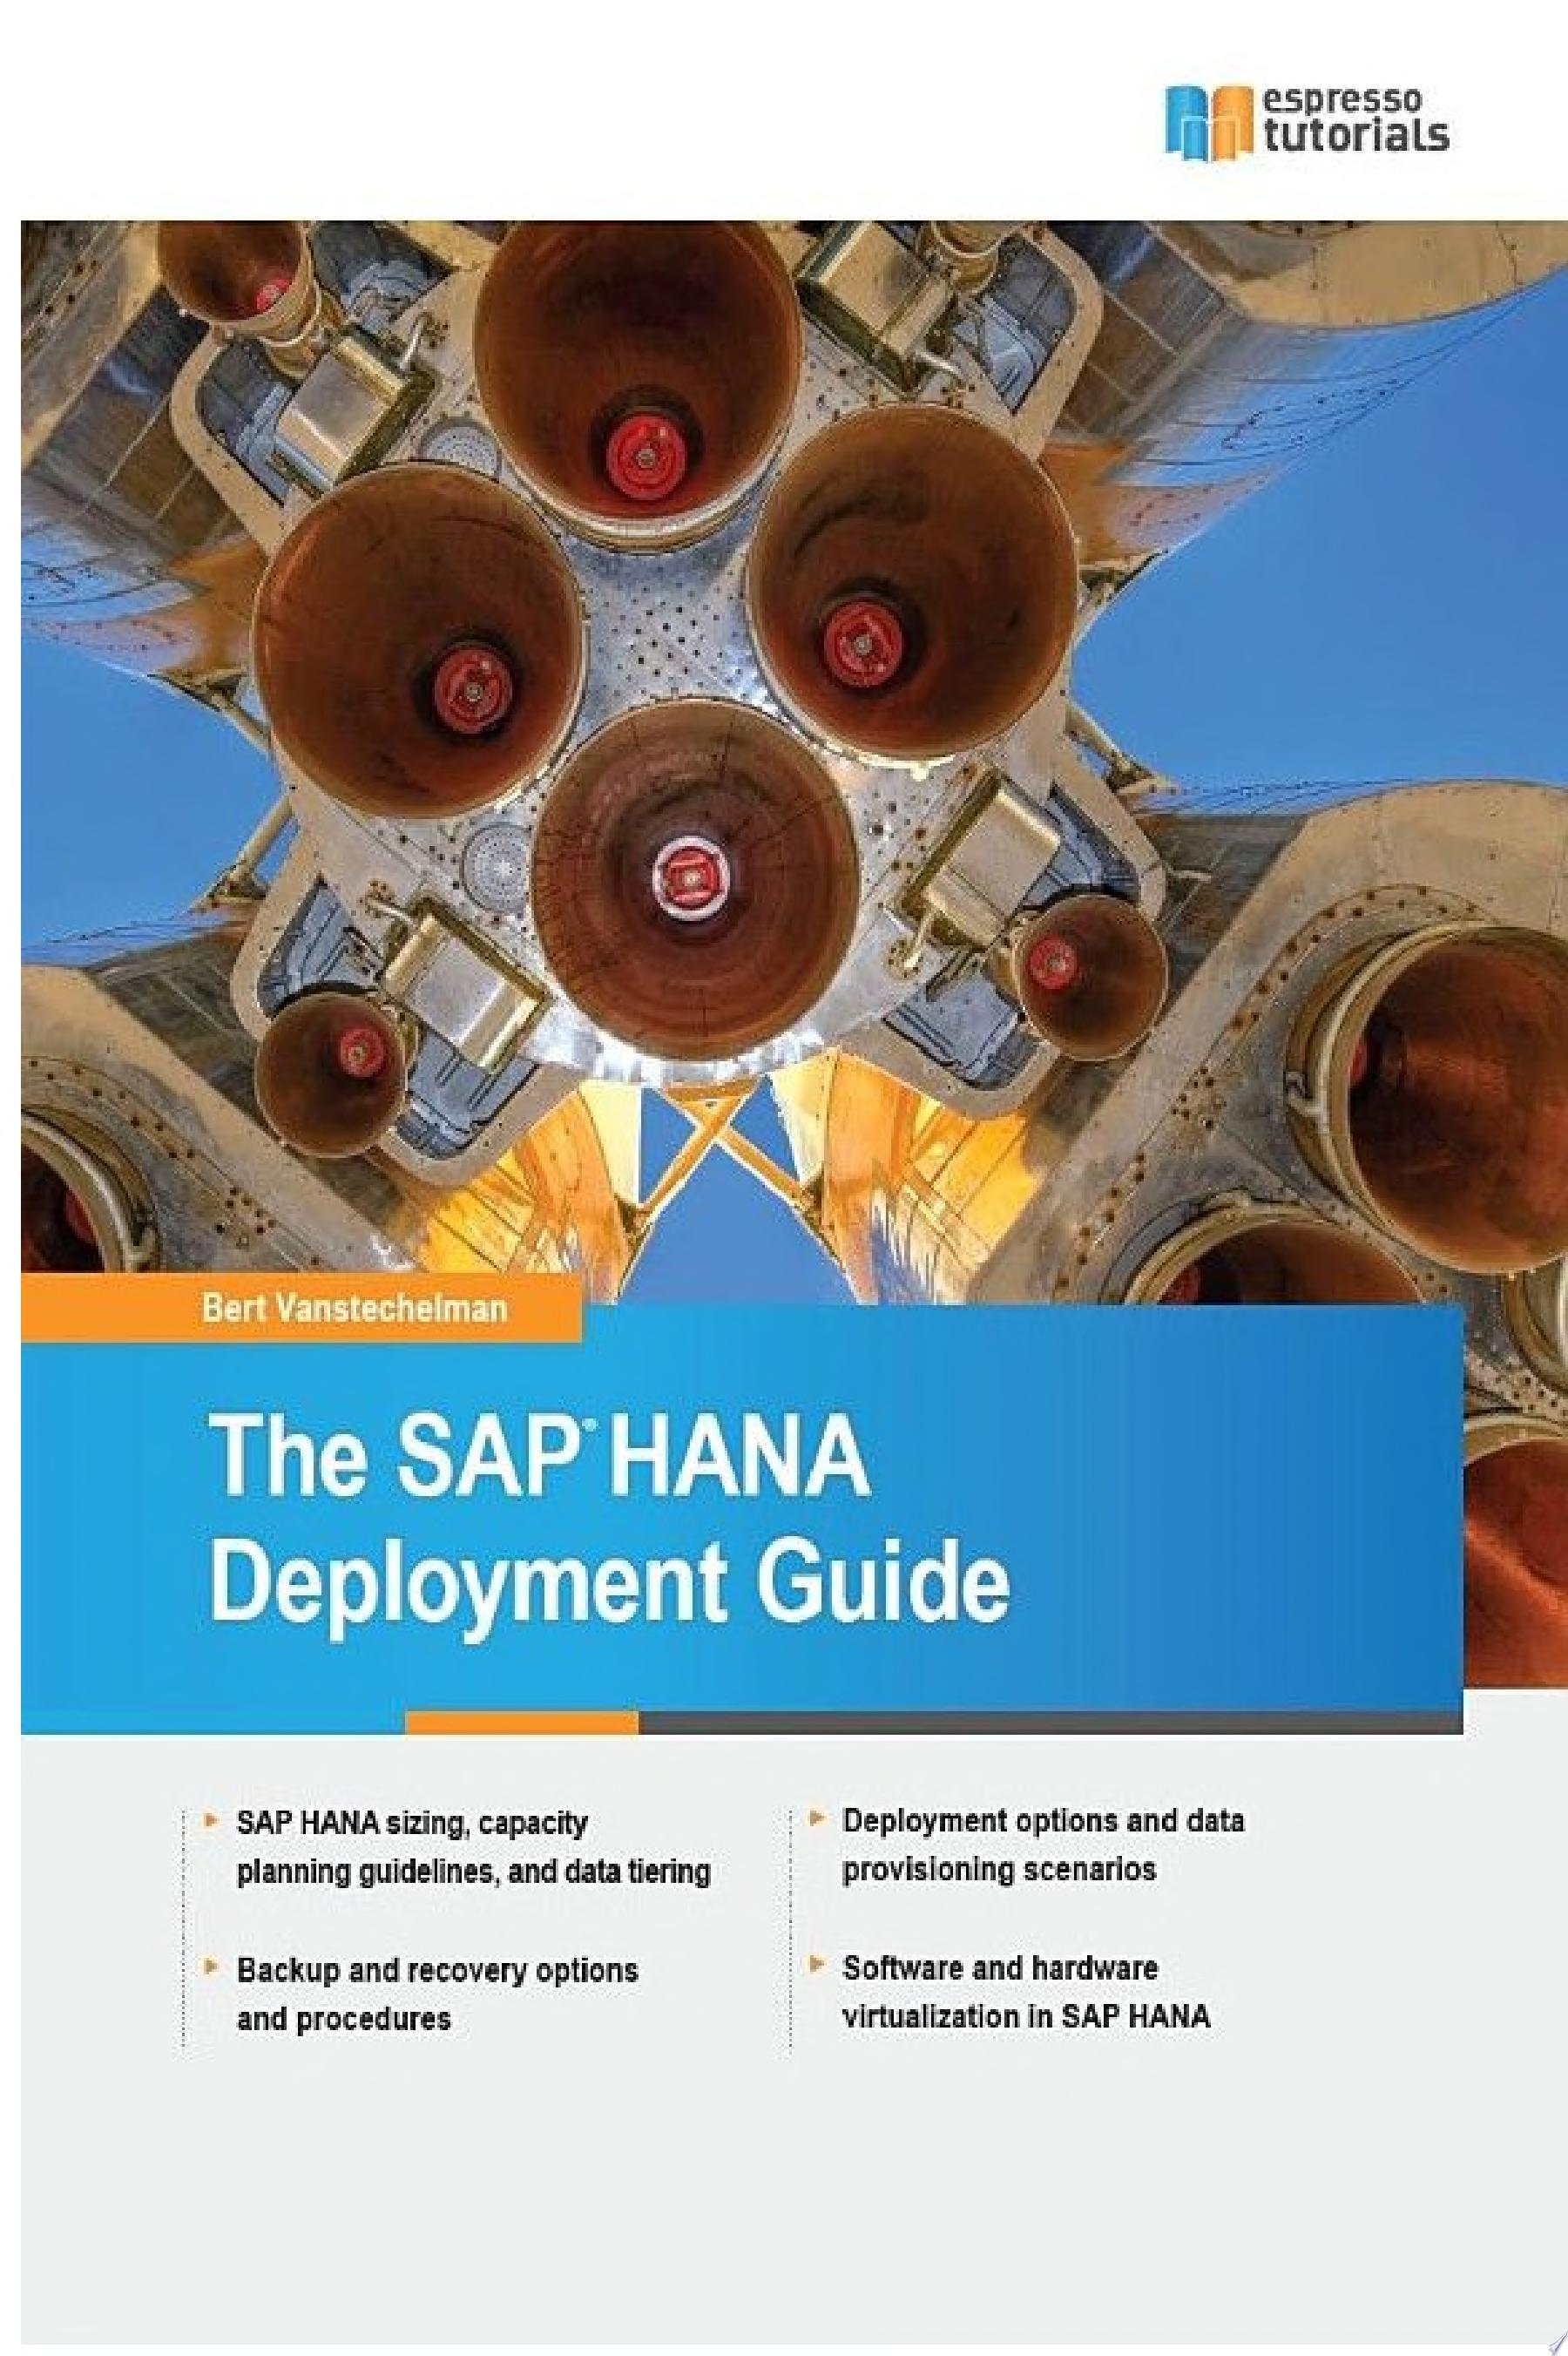 The SAP HANA Deployment Guide